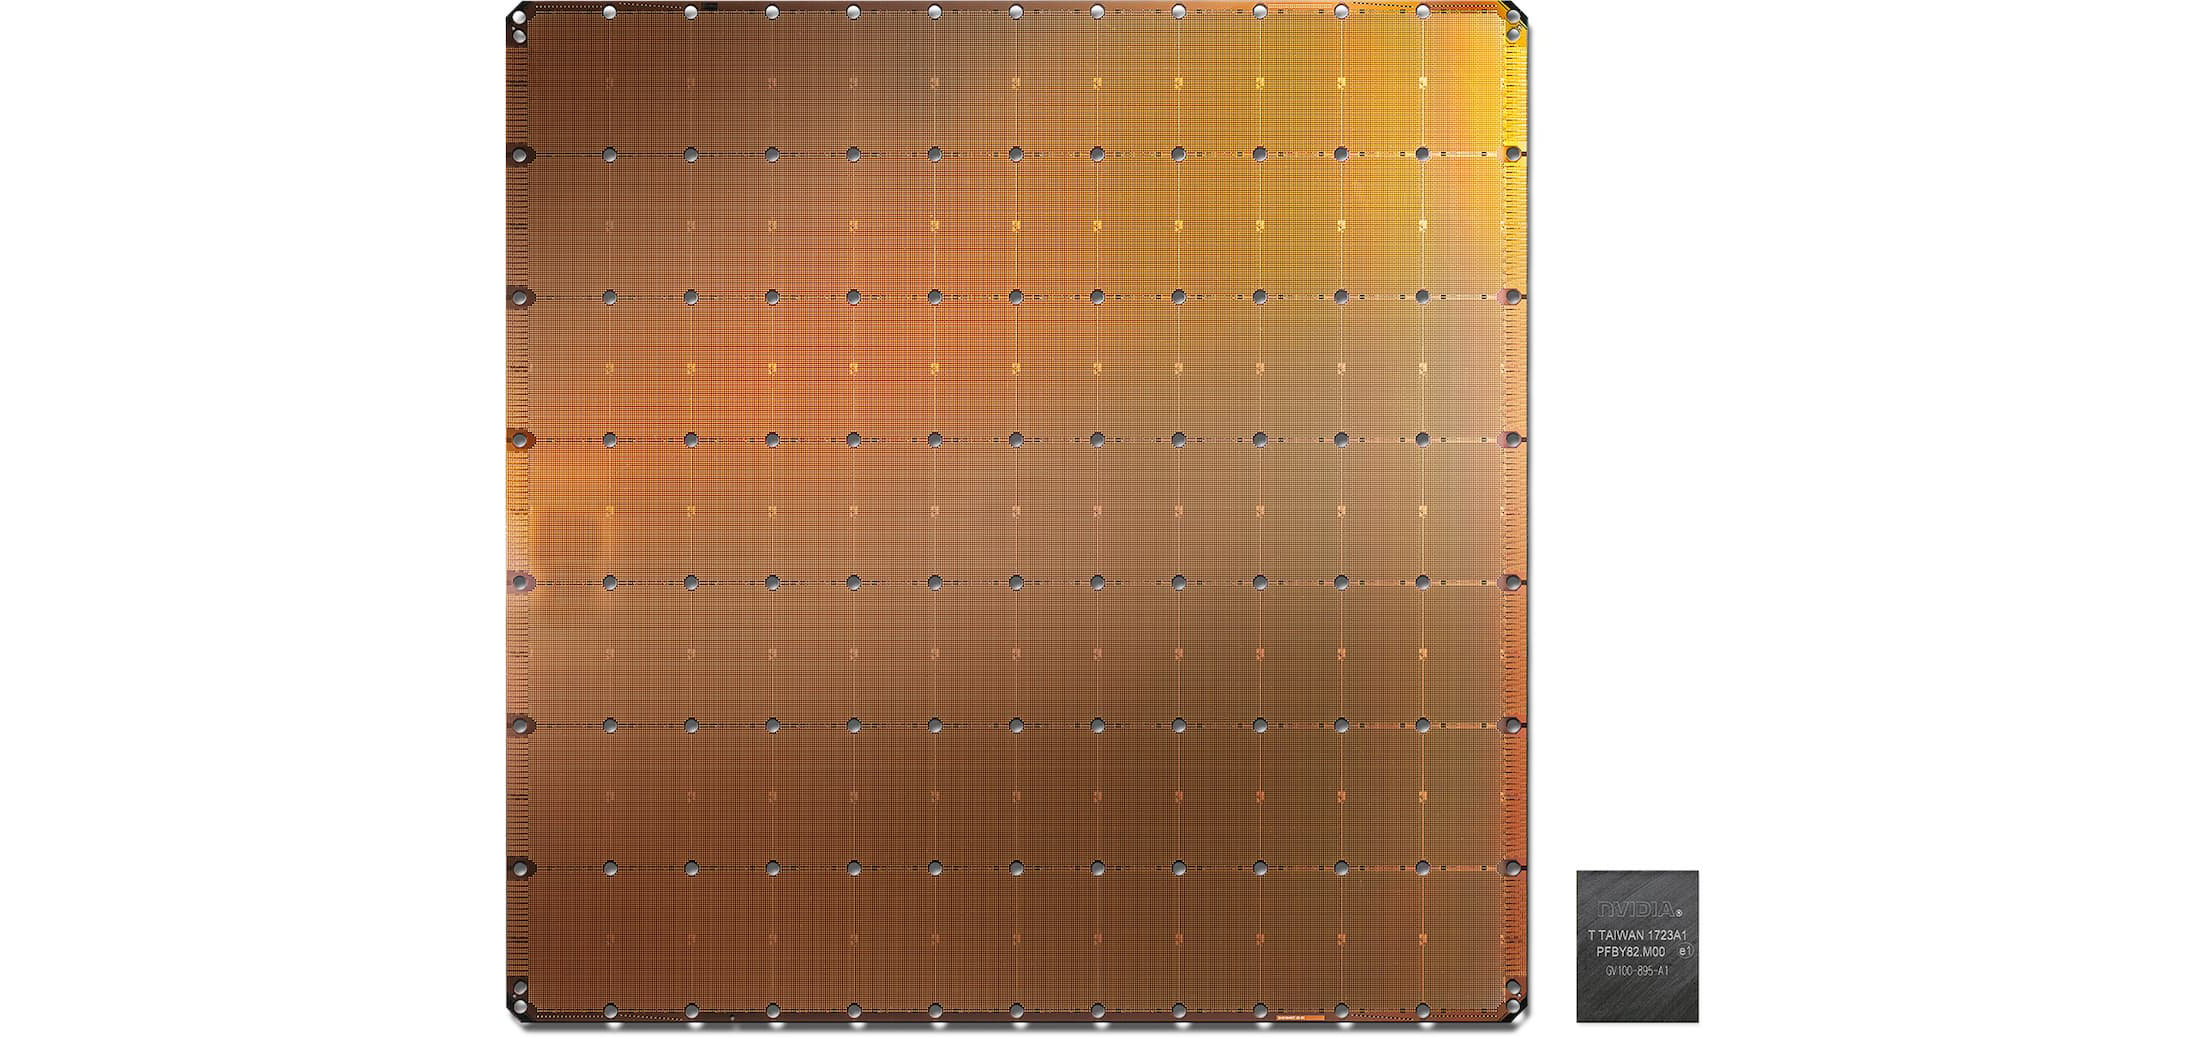 Wafer Scale Engine (WSE) chip